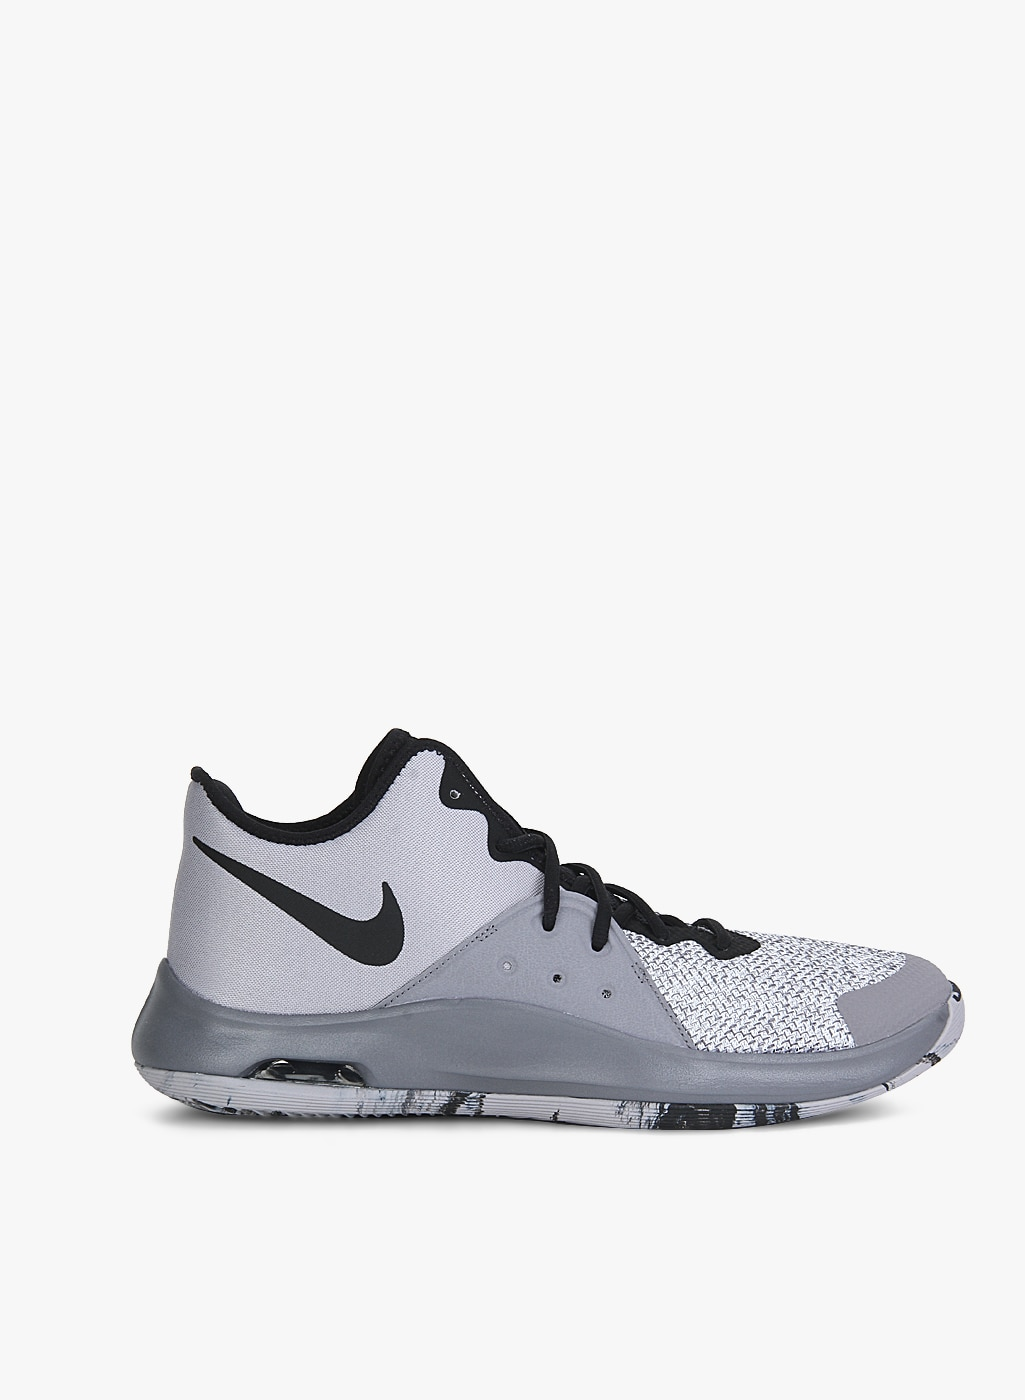 a8242b4f236bb Grey Nike Shoes for Men - Buy Grey Nike Men Shoes Online in India    Jabong.com